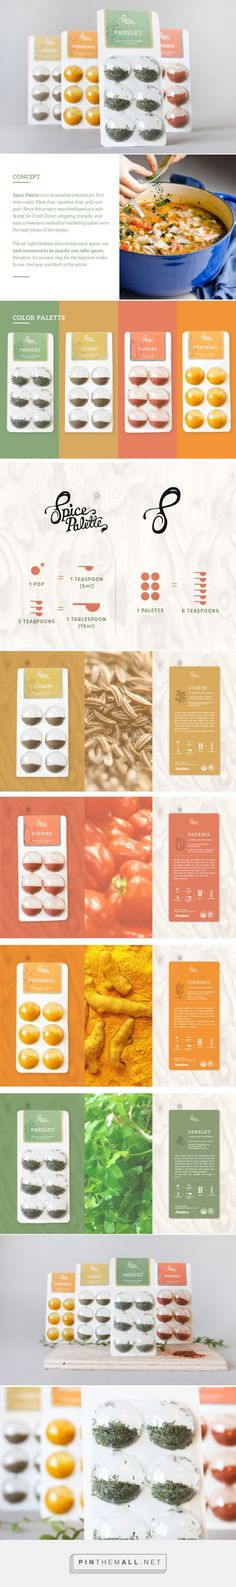 Mess free Spice packaging? Student #concept designed by Risa Takeuchi (USA) - http://www.packagingoftheworld.com/2016/03/spice-palette-student-project.html